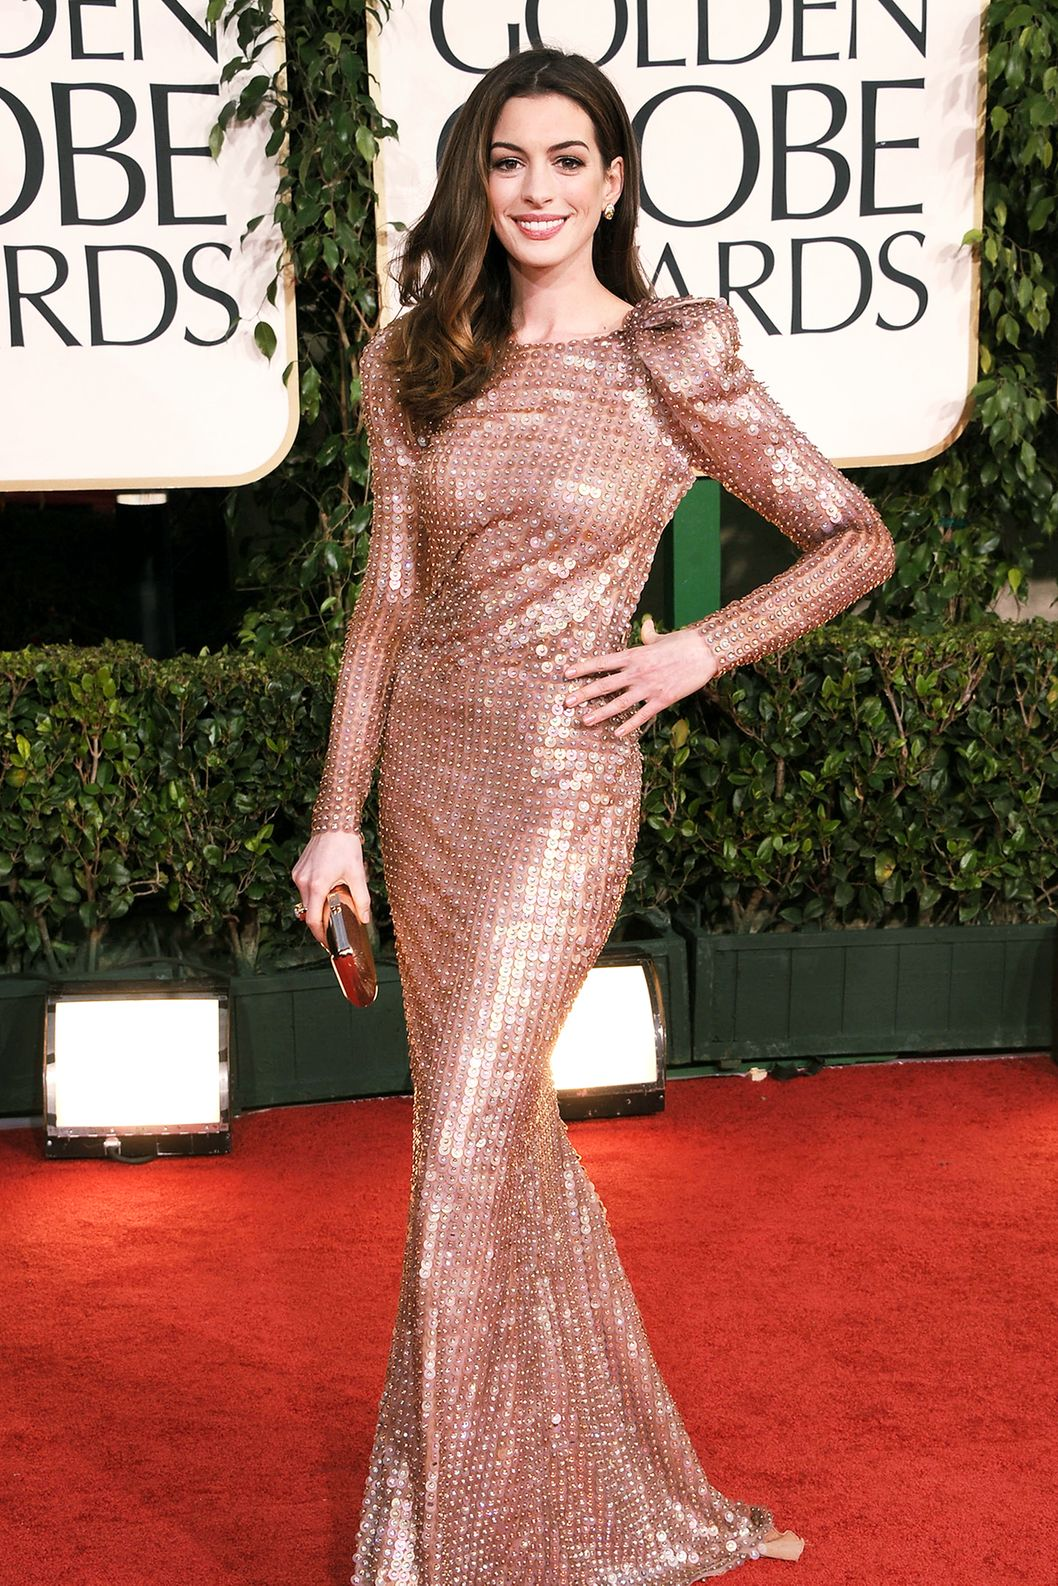 Actress Anne Hathaway arrives at the 68th Annual Golden Globe Awards held at The Beverly Hilton hotel on January 16, 2011 in Beverly Hills, California.